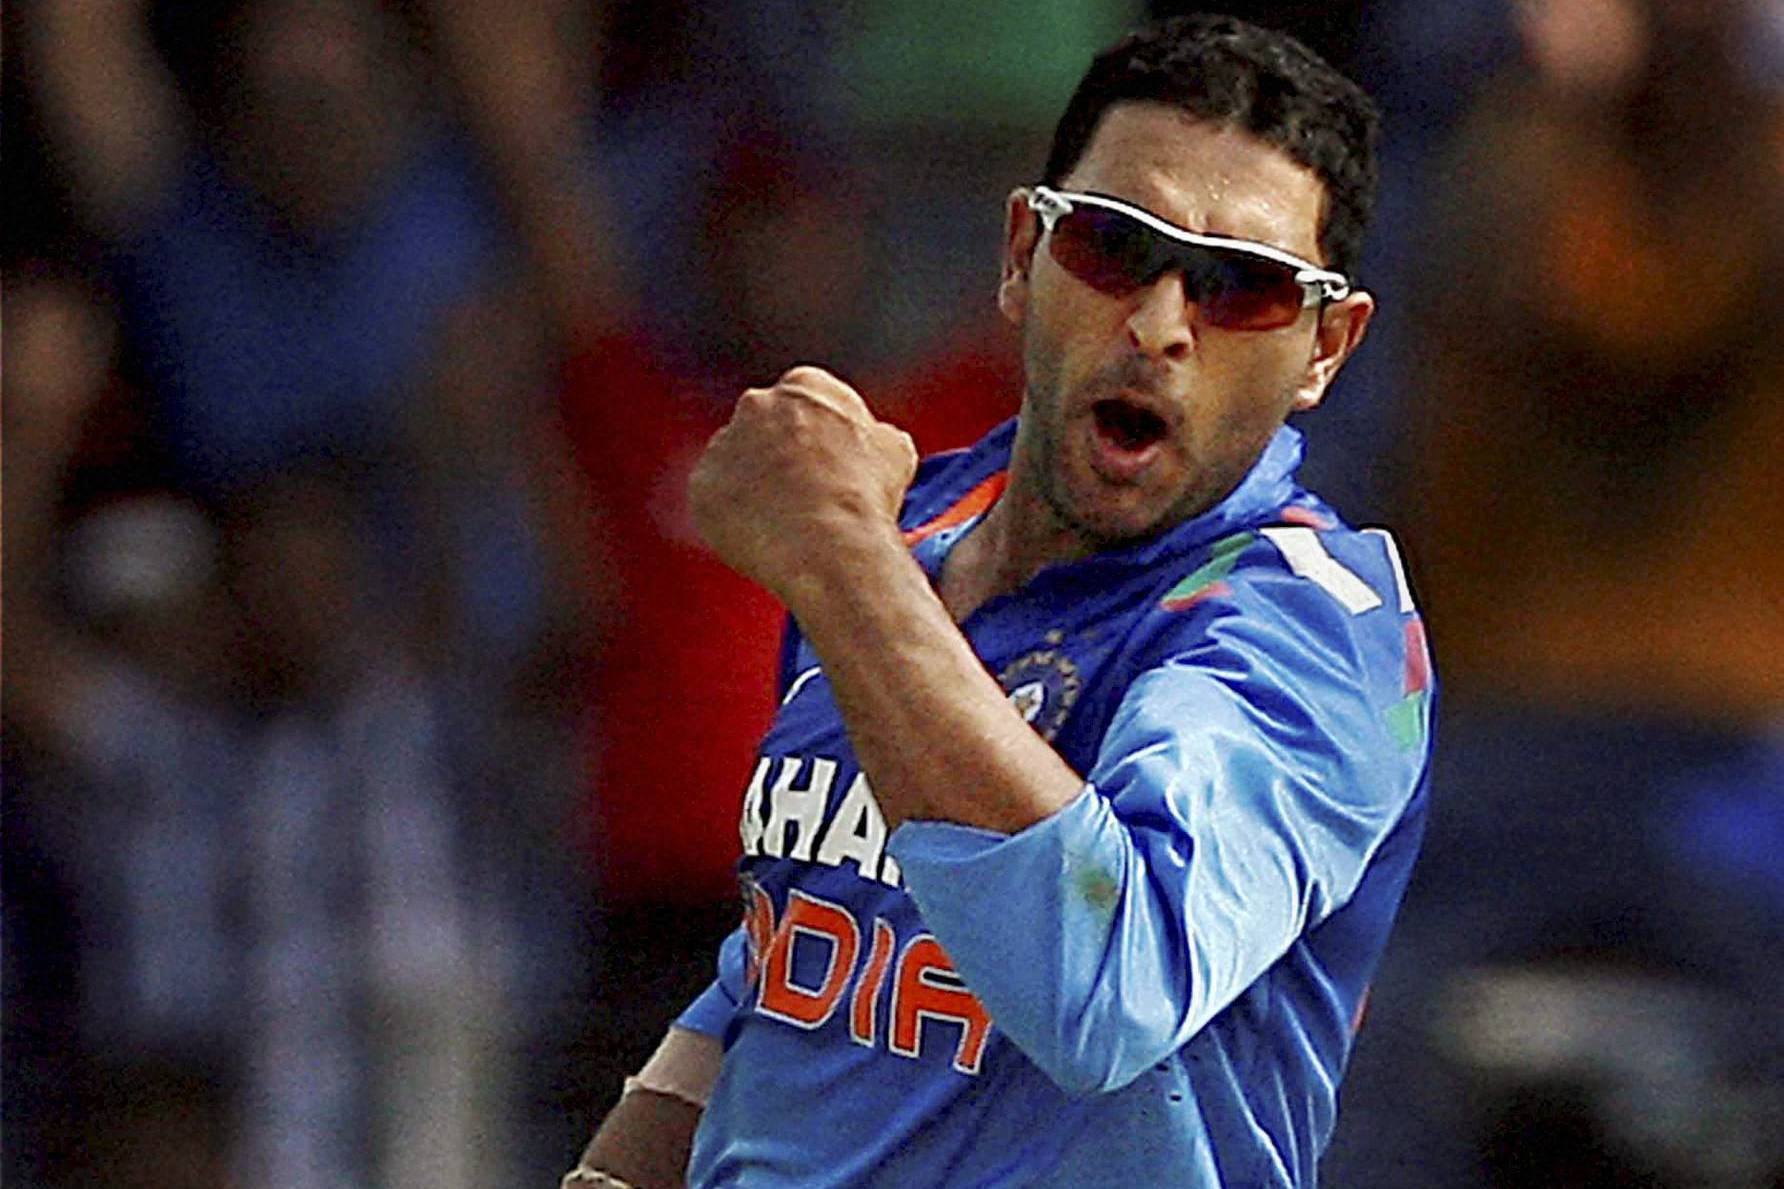 Yuvraj Singh Wallpapers High Resolution And Quality Download